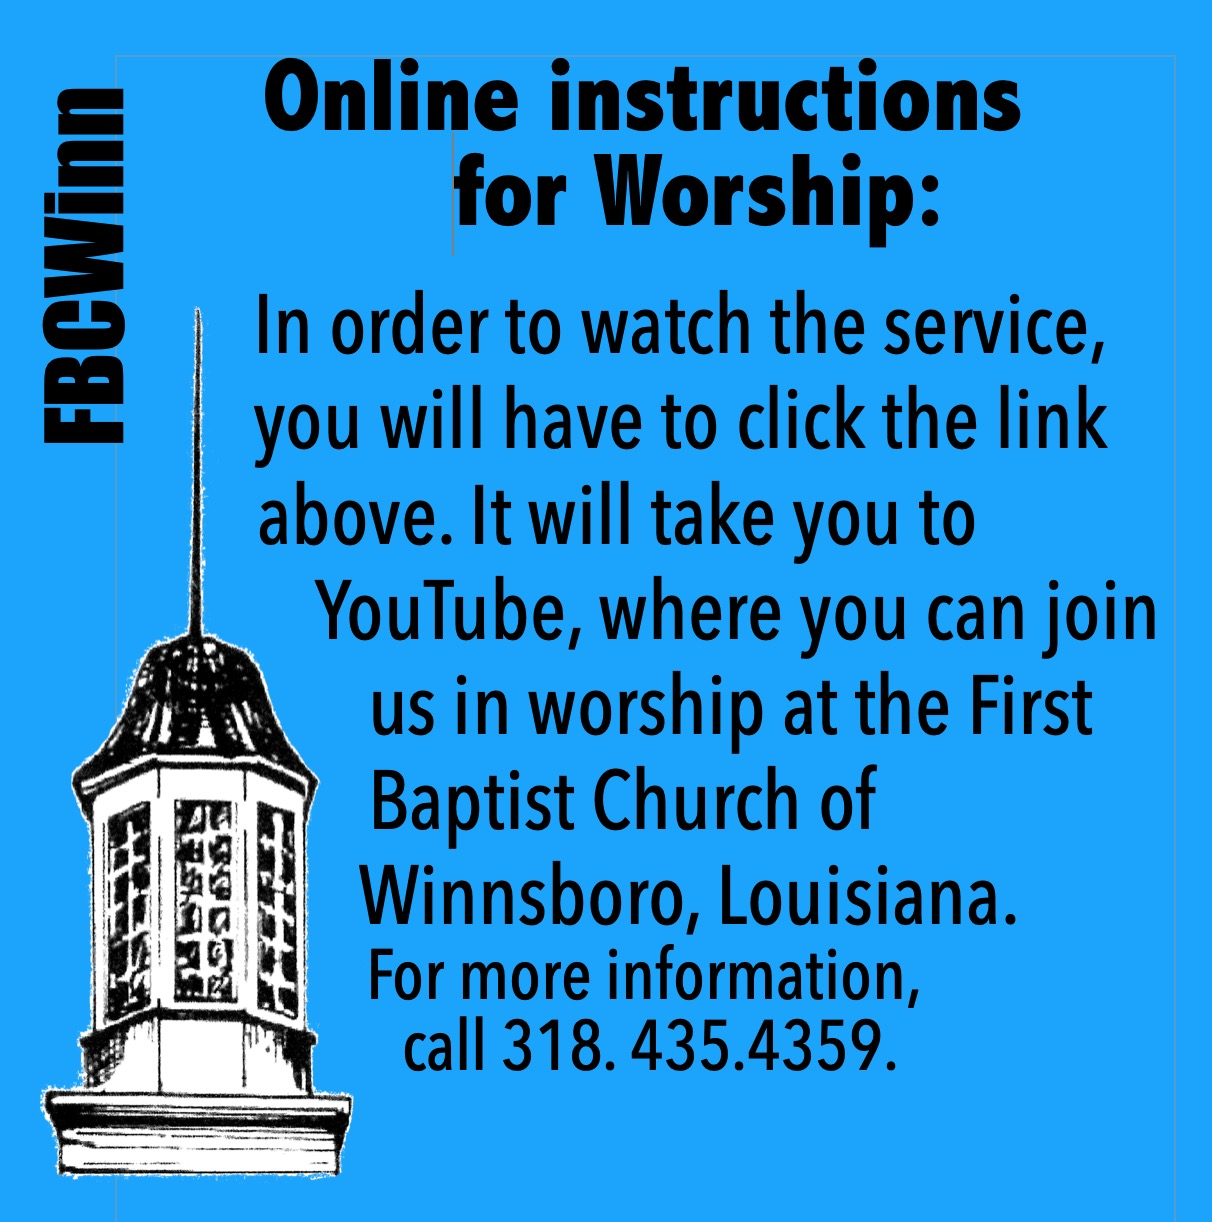 Go to youtube by clicking on the above link to access the latest worship service.